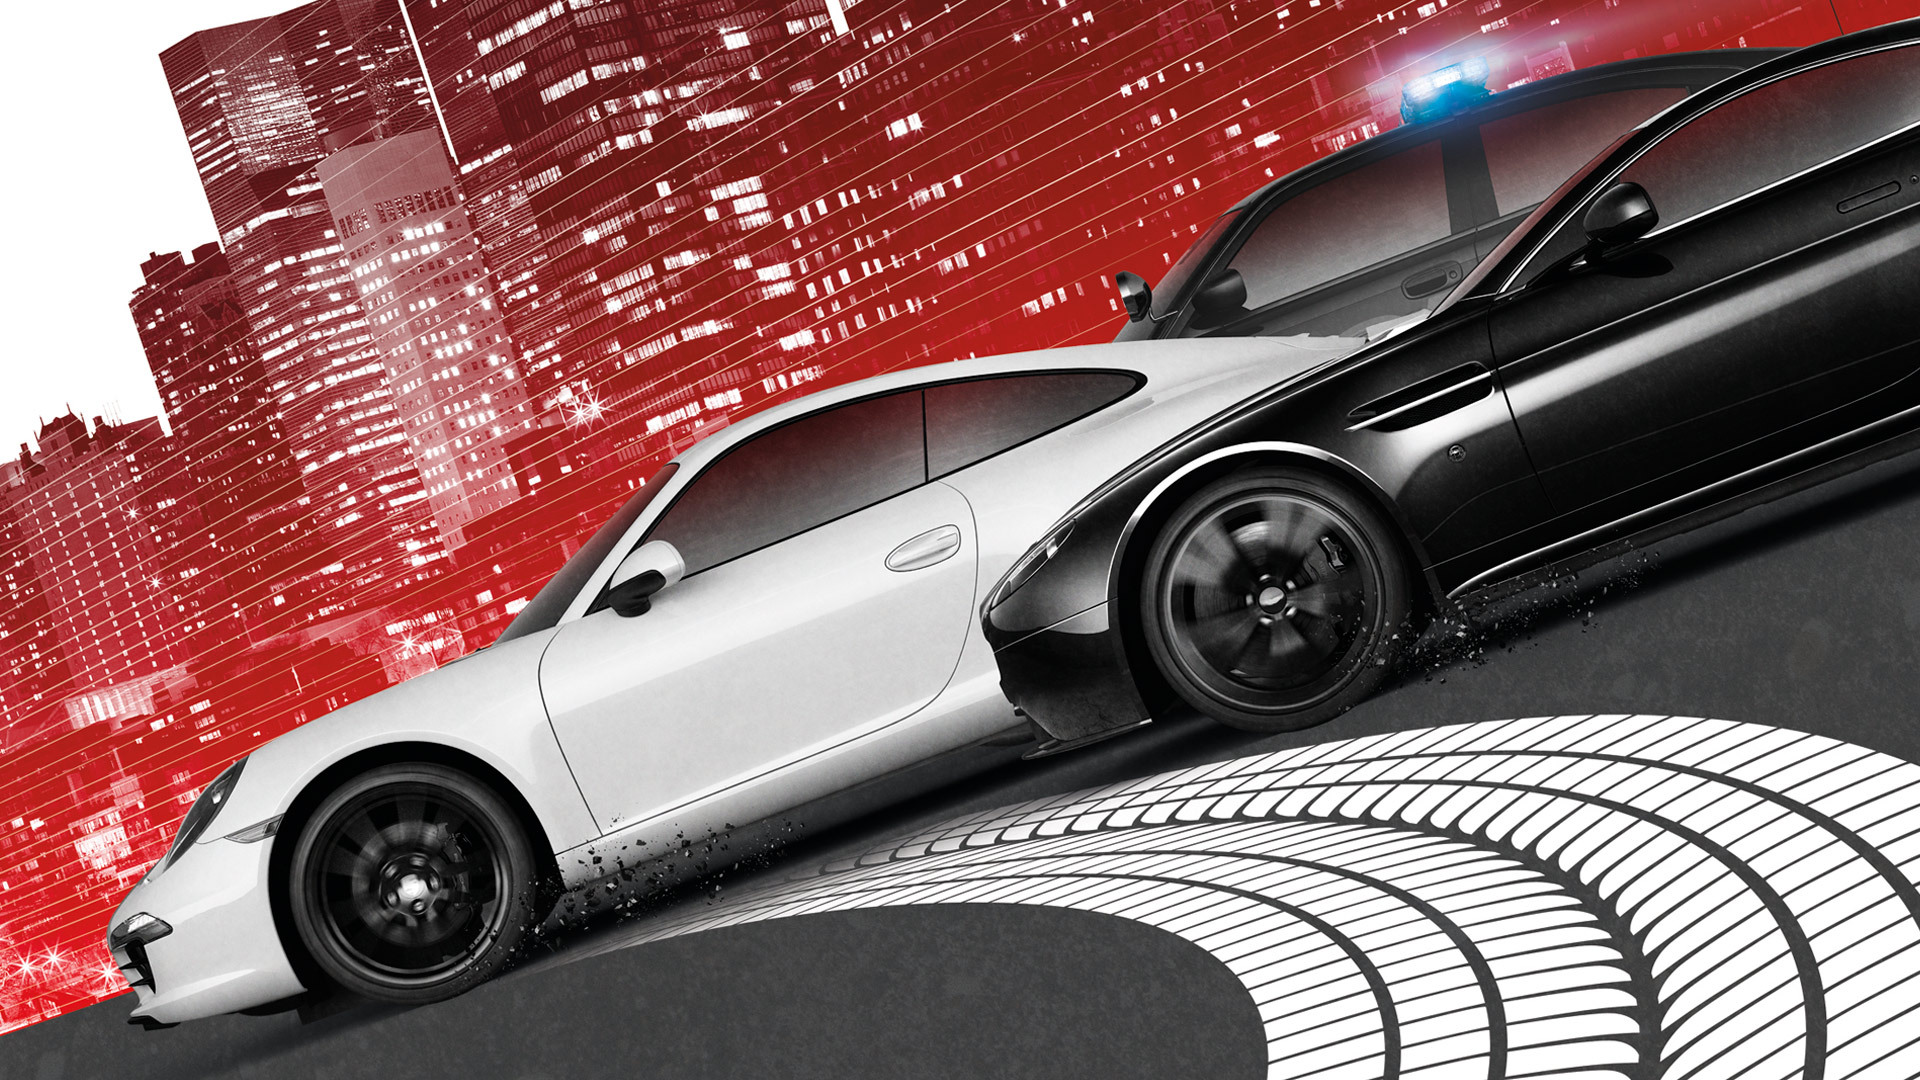 Арт к игре Need for Speed: Most Wanted 2012